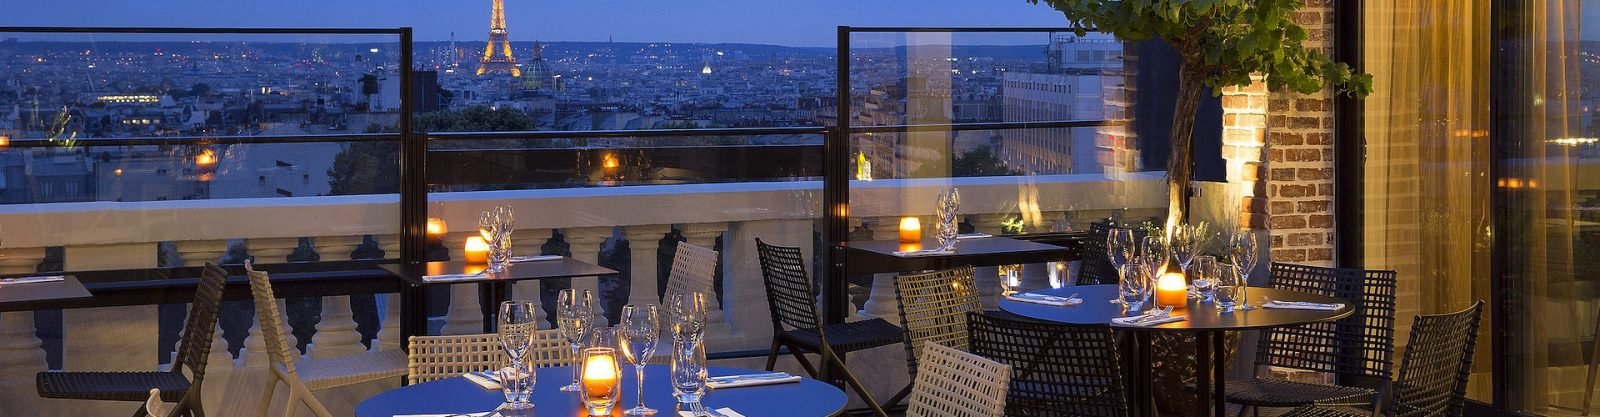 header hotel privatif paris terrass montmartre